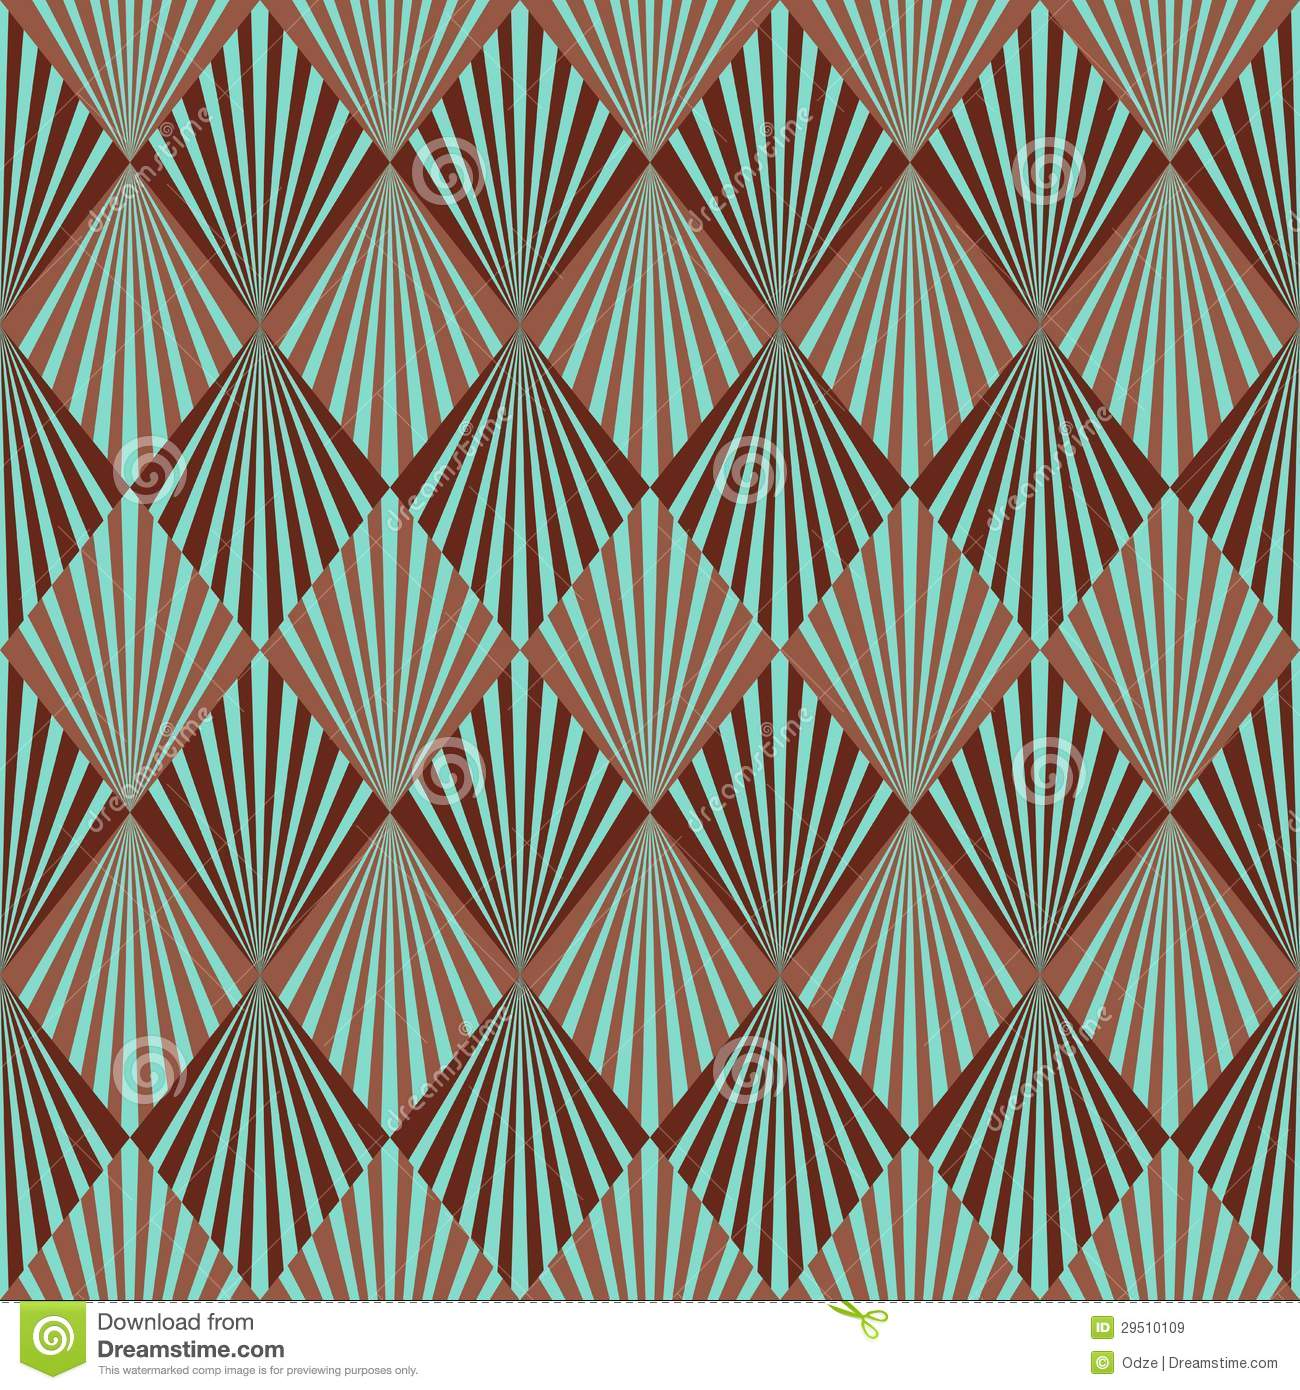 Art deco pattern royalty free stock images image 29510109 for Design art deco